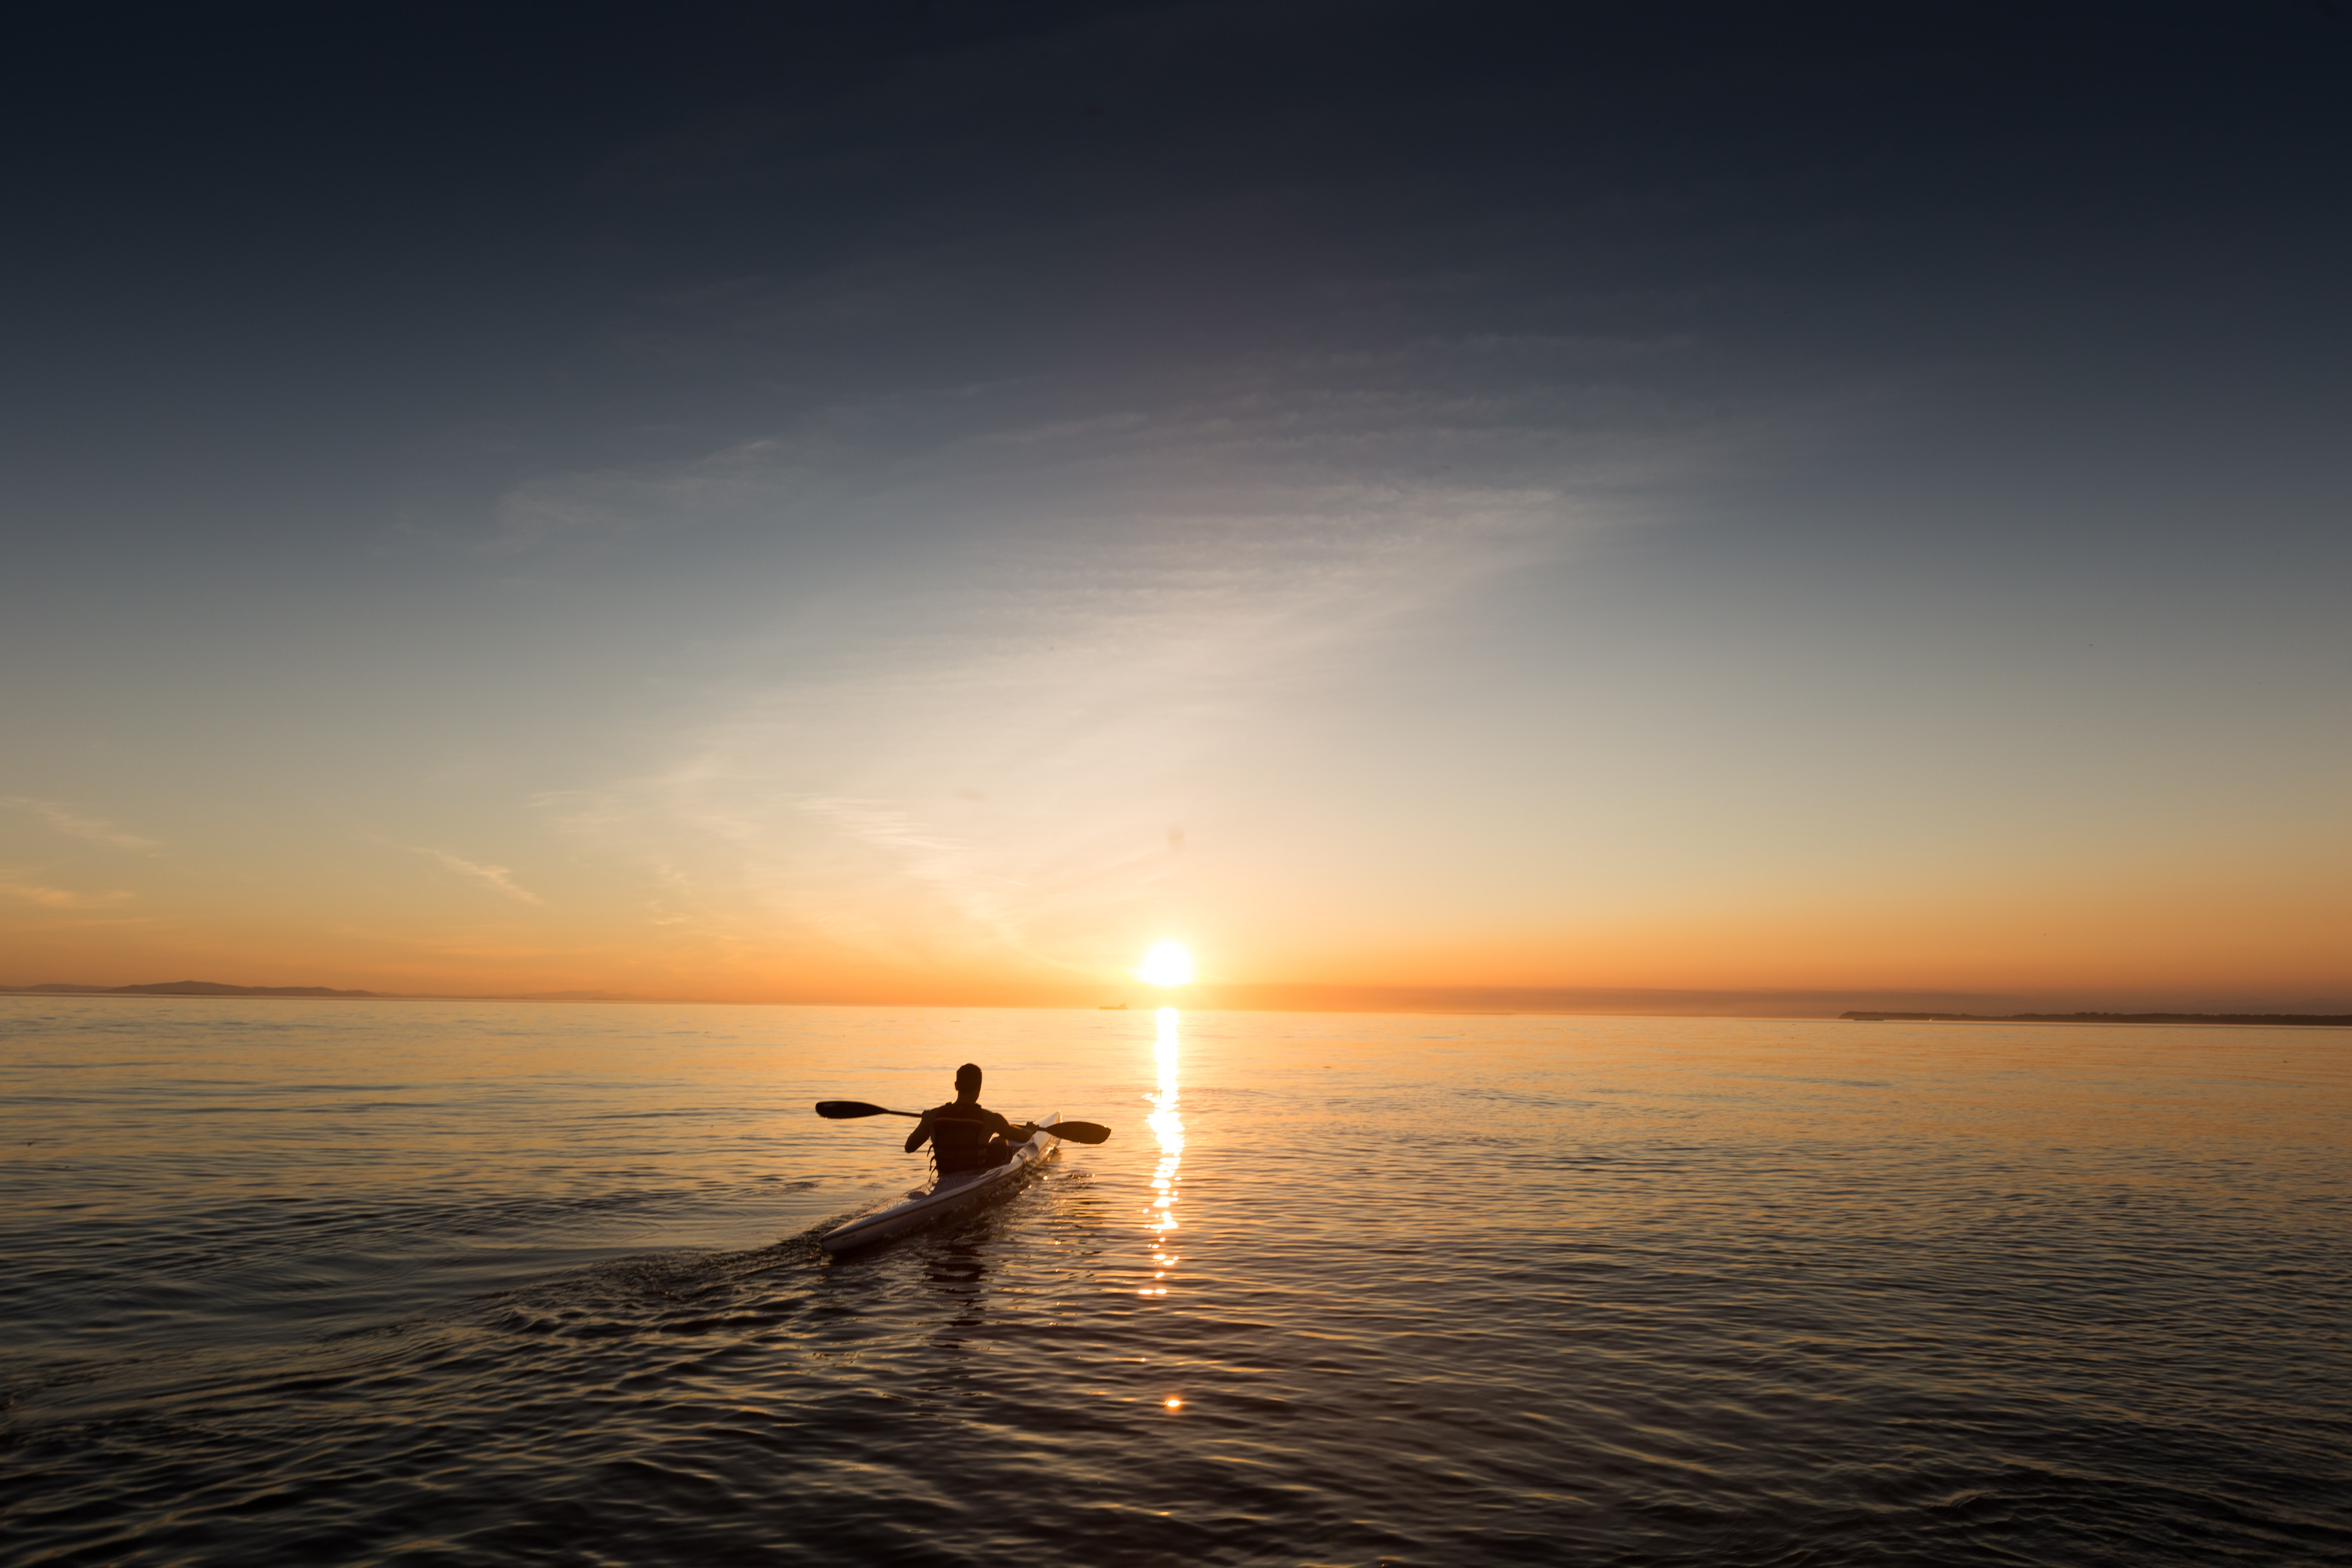 A man paddling in a kayak over the calm water in the evening during sunset